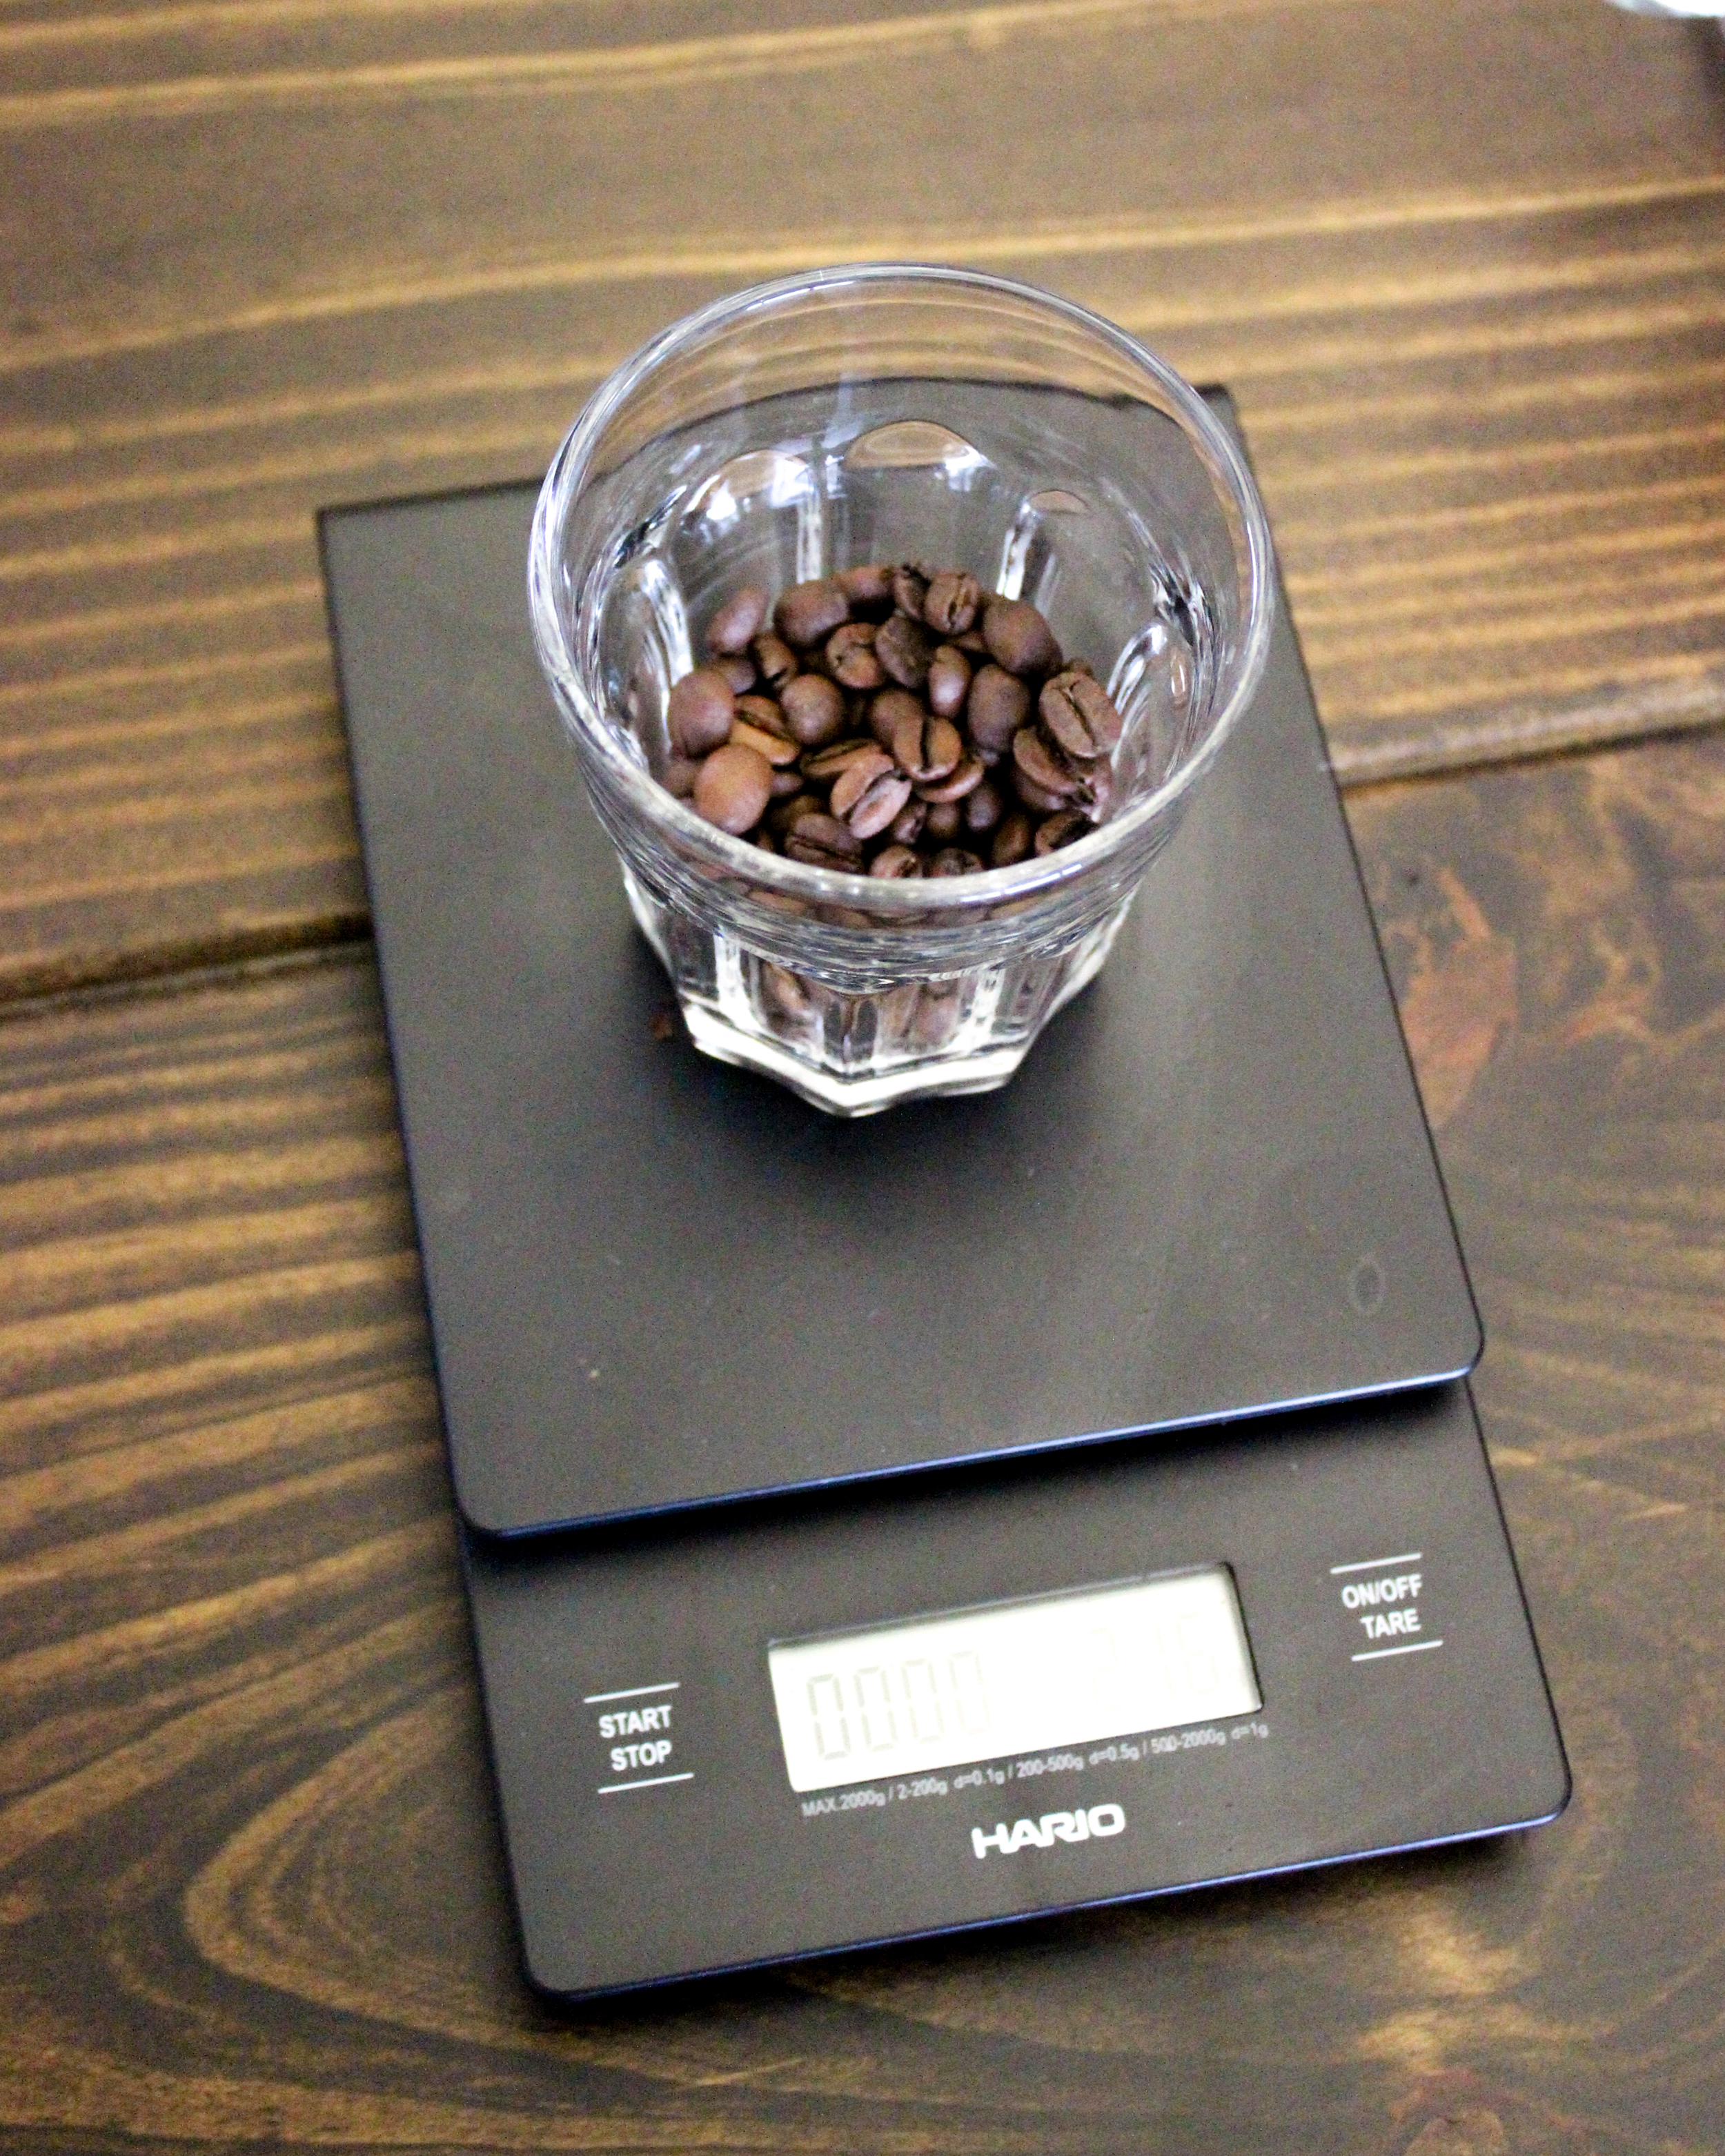 2. Weigh out 22 grams of coffee.